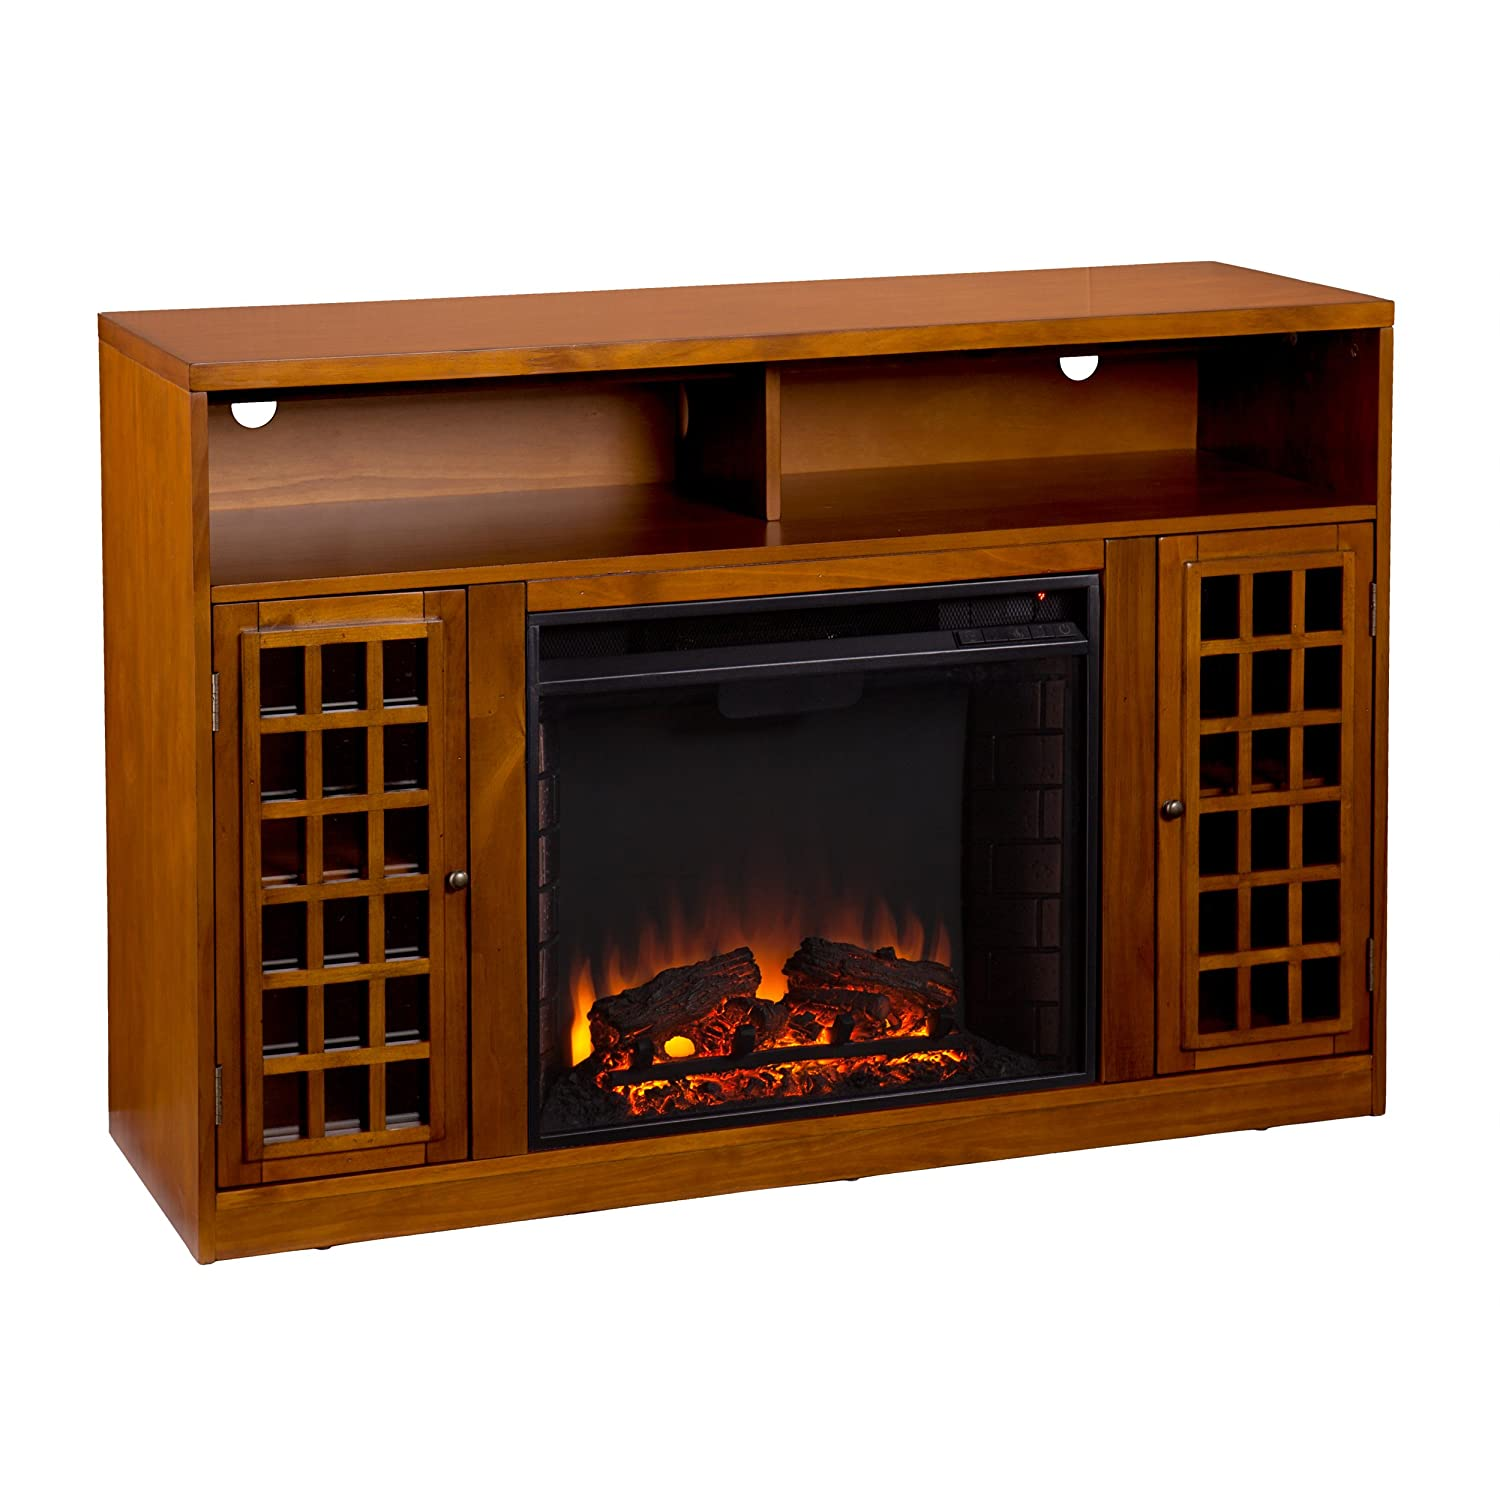 Amazoncom SEI Narita Media Console with Electric Fireplace